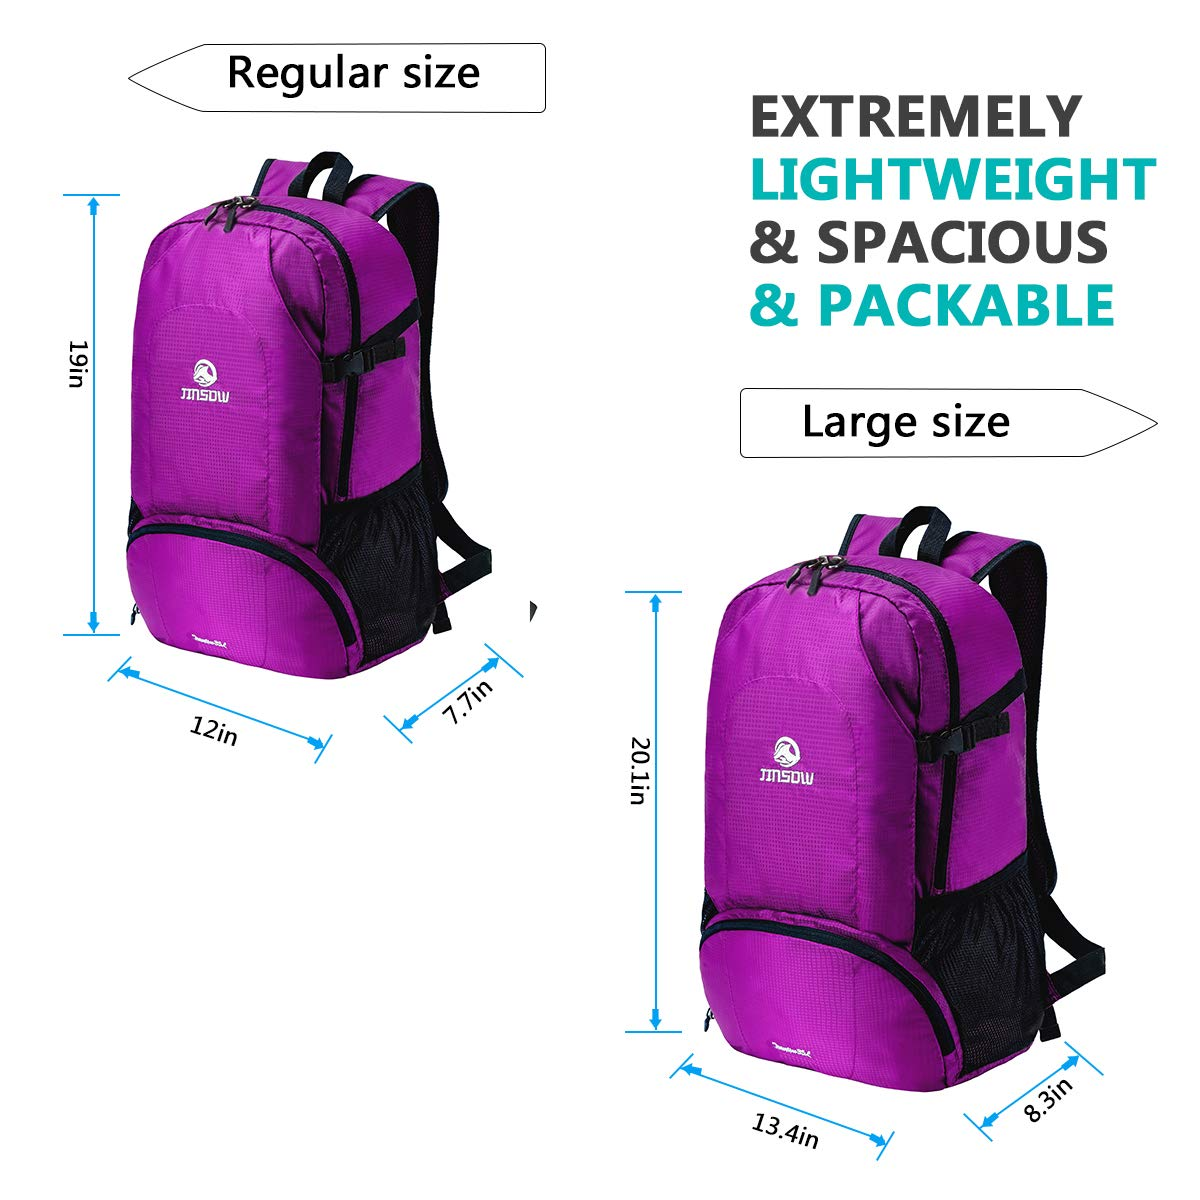 JINSOW 35L Lightweight Packable Hiking Backpack Daypack, Water Resistant Foldable Large Bags Travel Camping Outdoor Backpacks for Women Men Boys Girls Purple by JINSOW (Image #6)